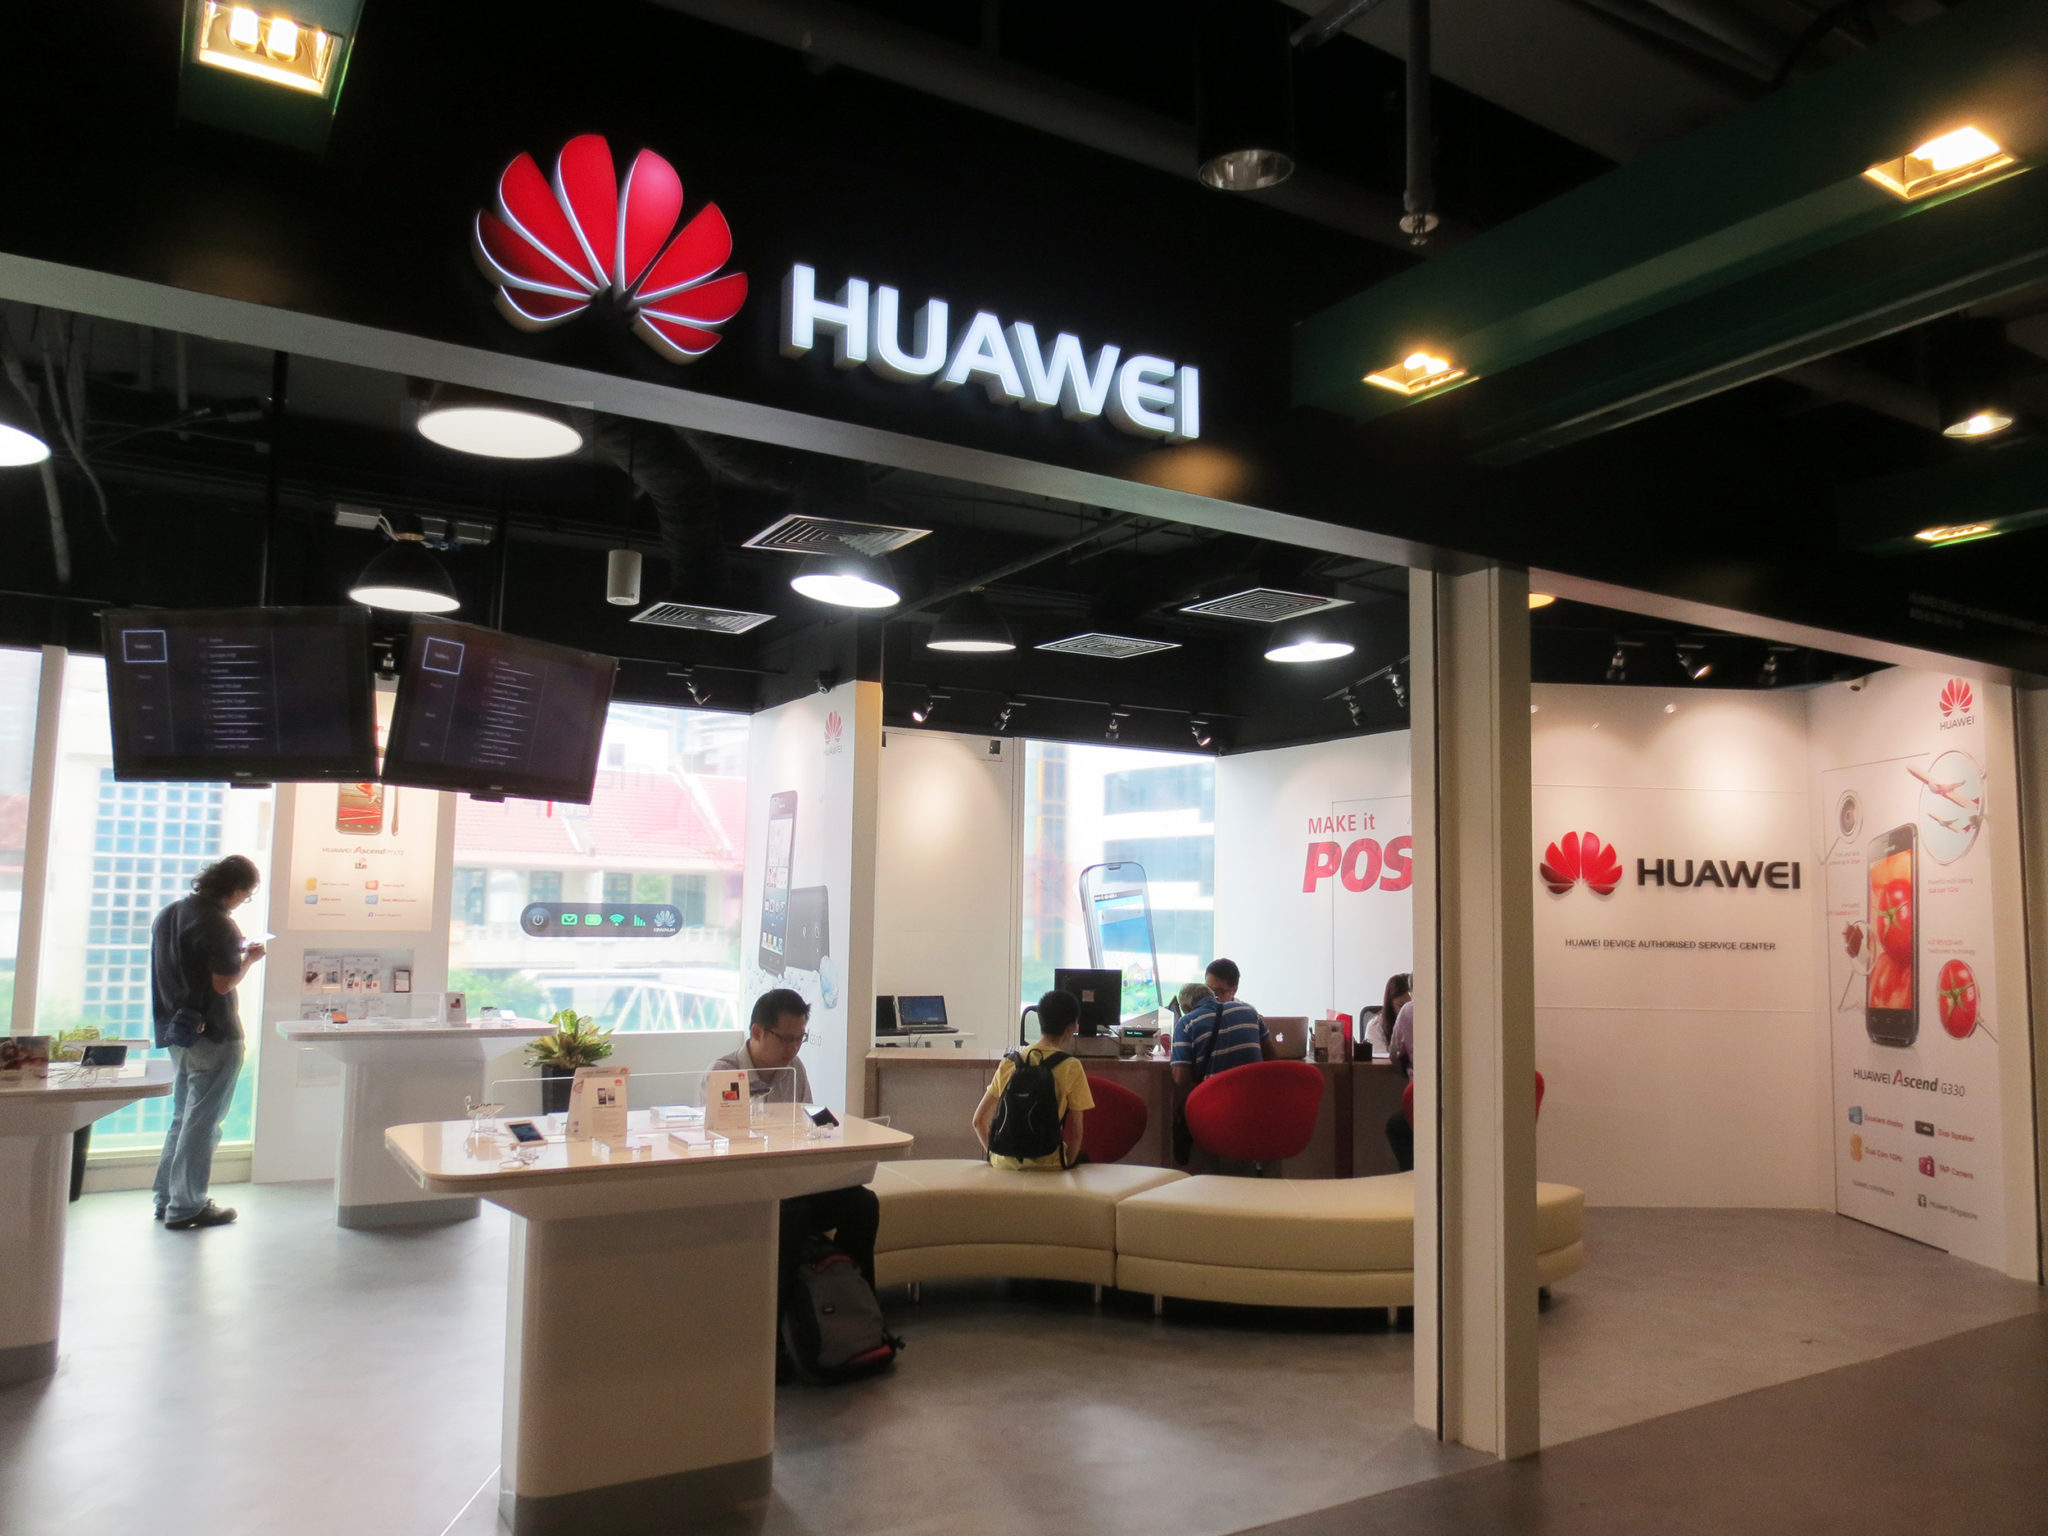 Huawei @ The Central